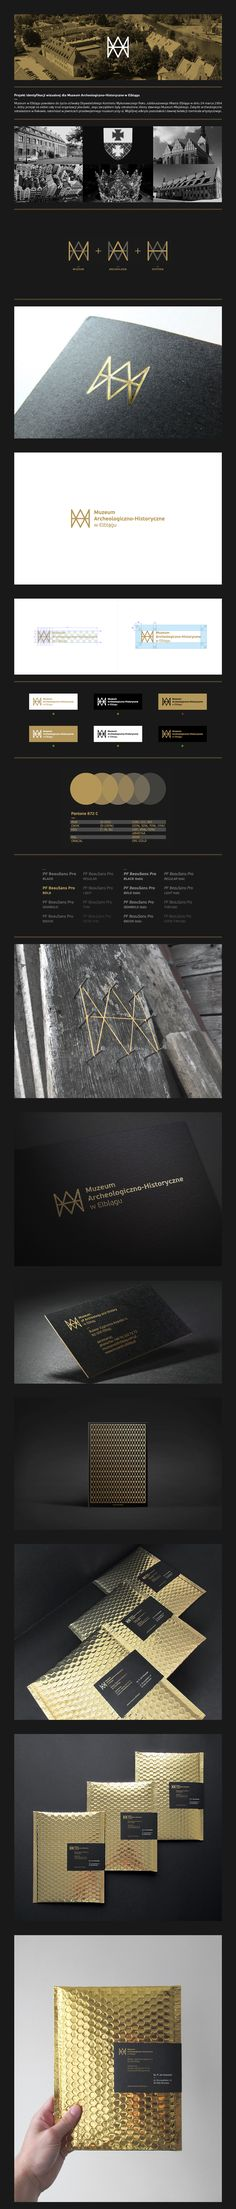 CONTESTProject 2014—Design of visual identification for Museum of Archeology and History in Elblag.